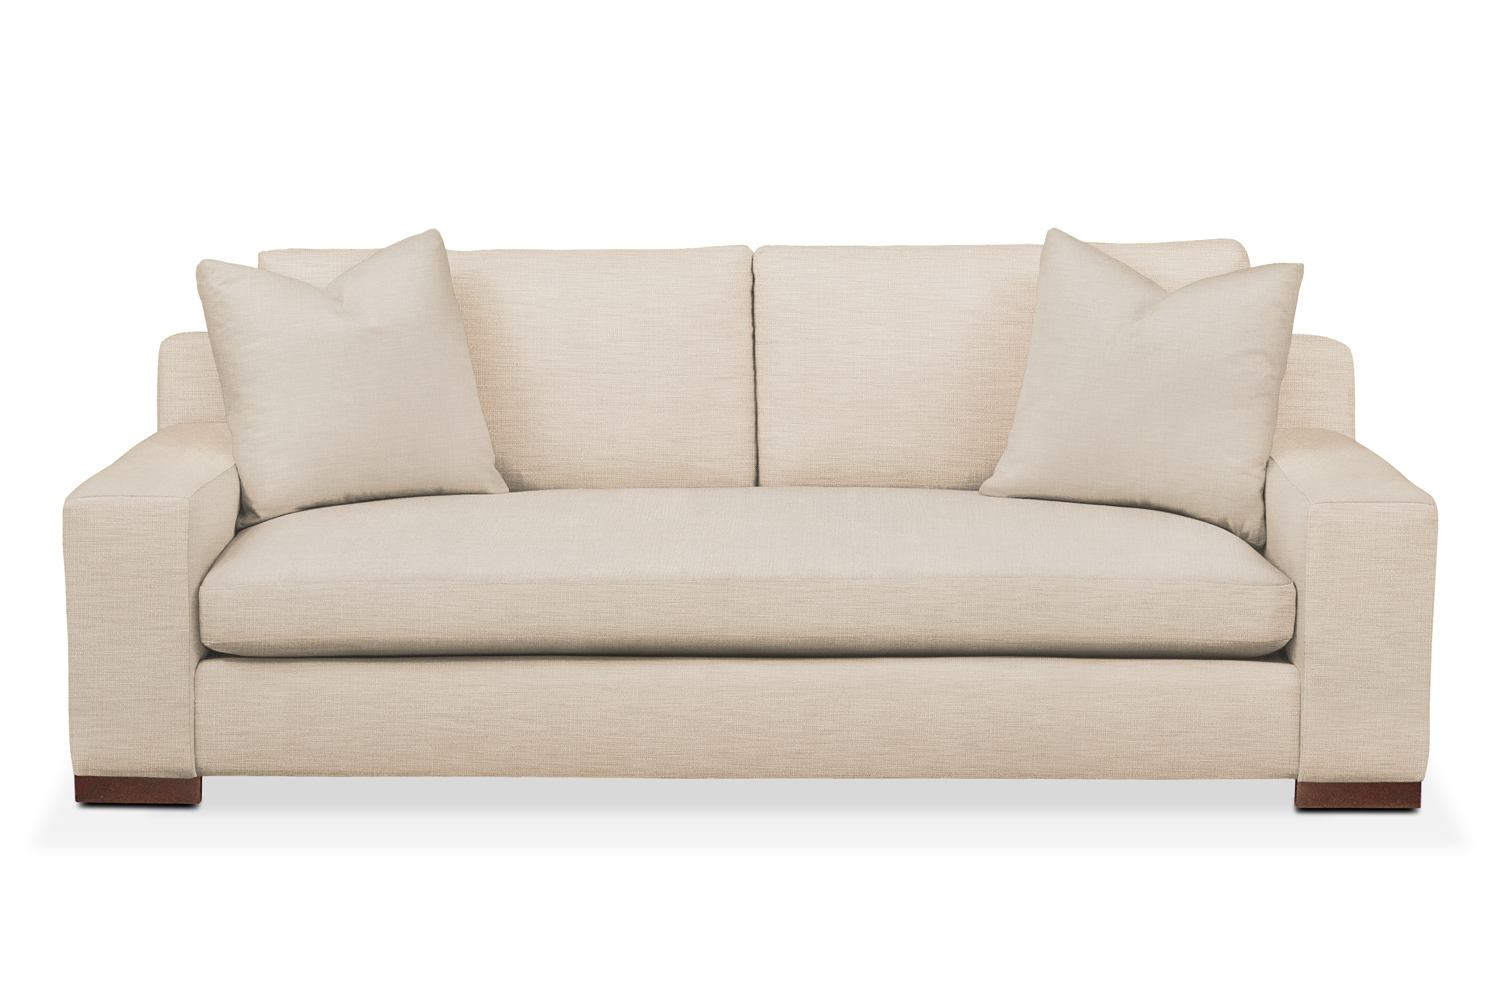 Ethan sofa comfort in victory ivory american signature for Comfort living furniture